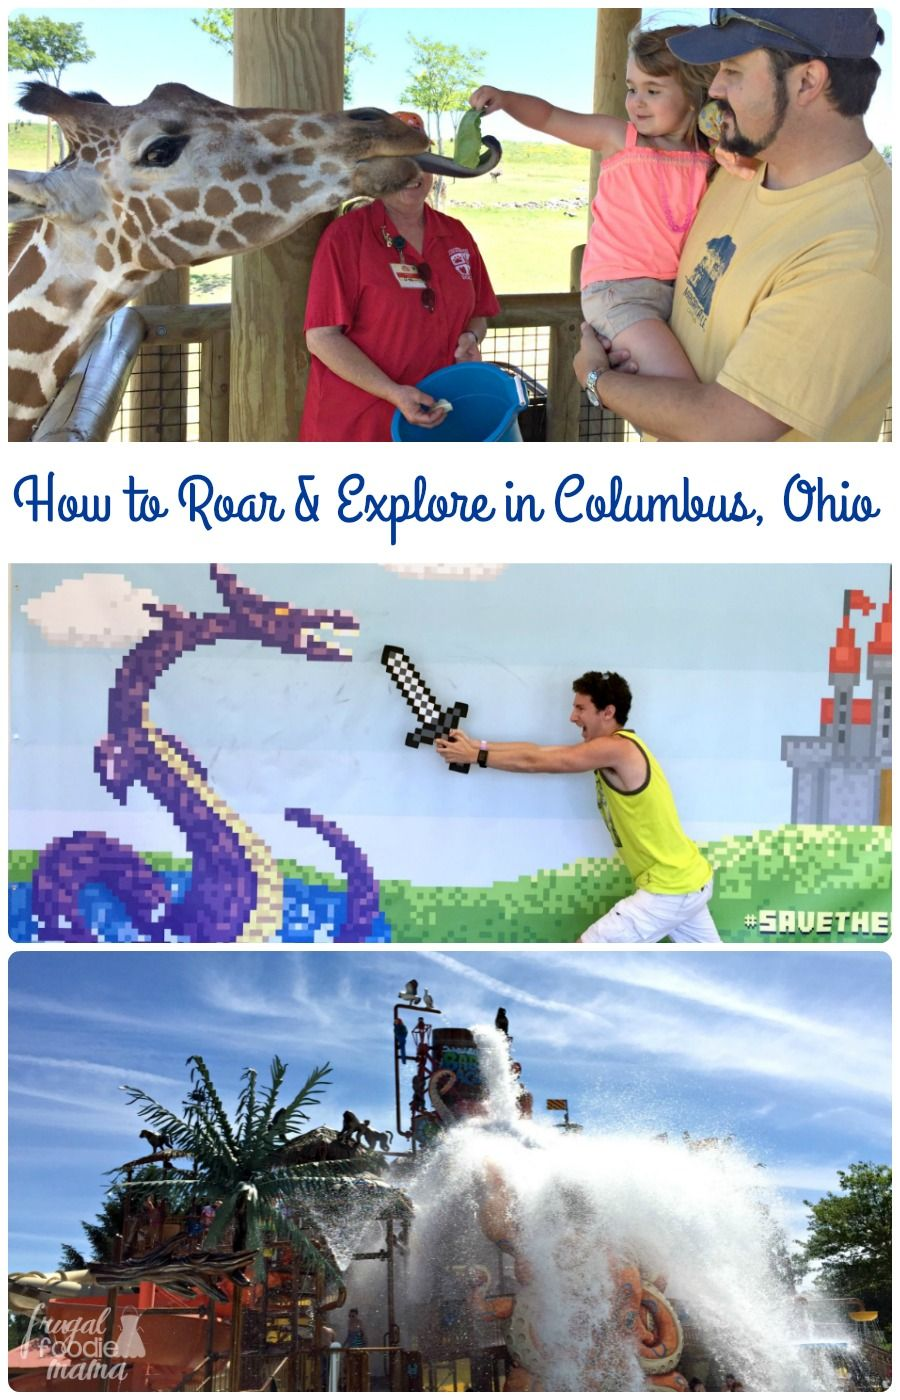 Not only is the fun-packed Columbus Roar & Explore Getaway budget friendly, but it also offers a little something for everyone in the family from the preschooler to the teenager to the adults. #sponsored